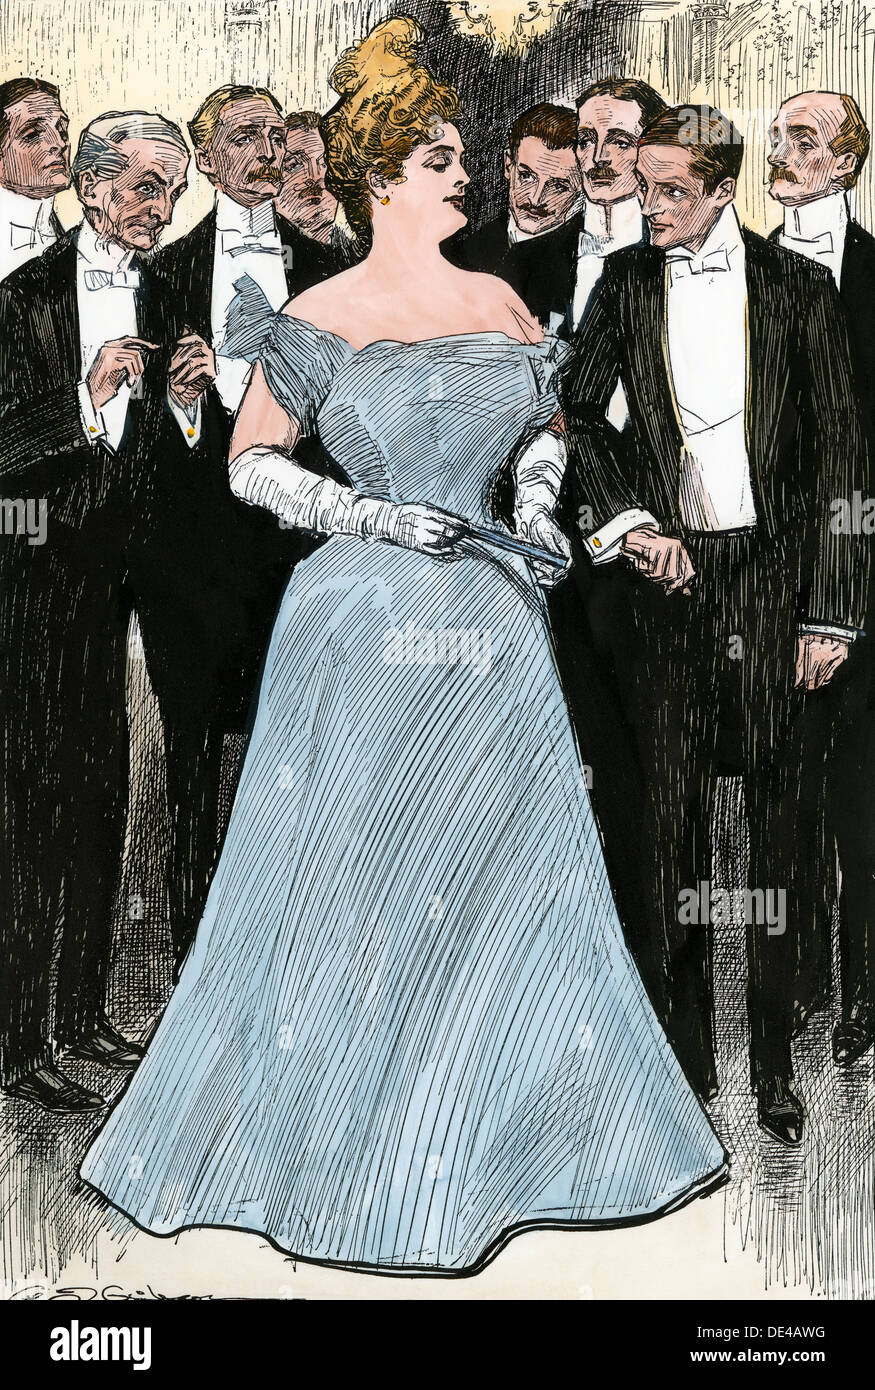 Society woman in her 'Indian Summer,' escorted into a room circa 1900. Hand-colored woodcut of a Charles Dana Gibson illustration - Stock Image